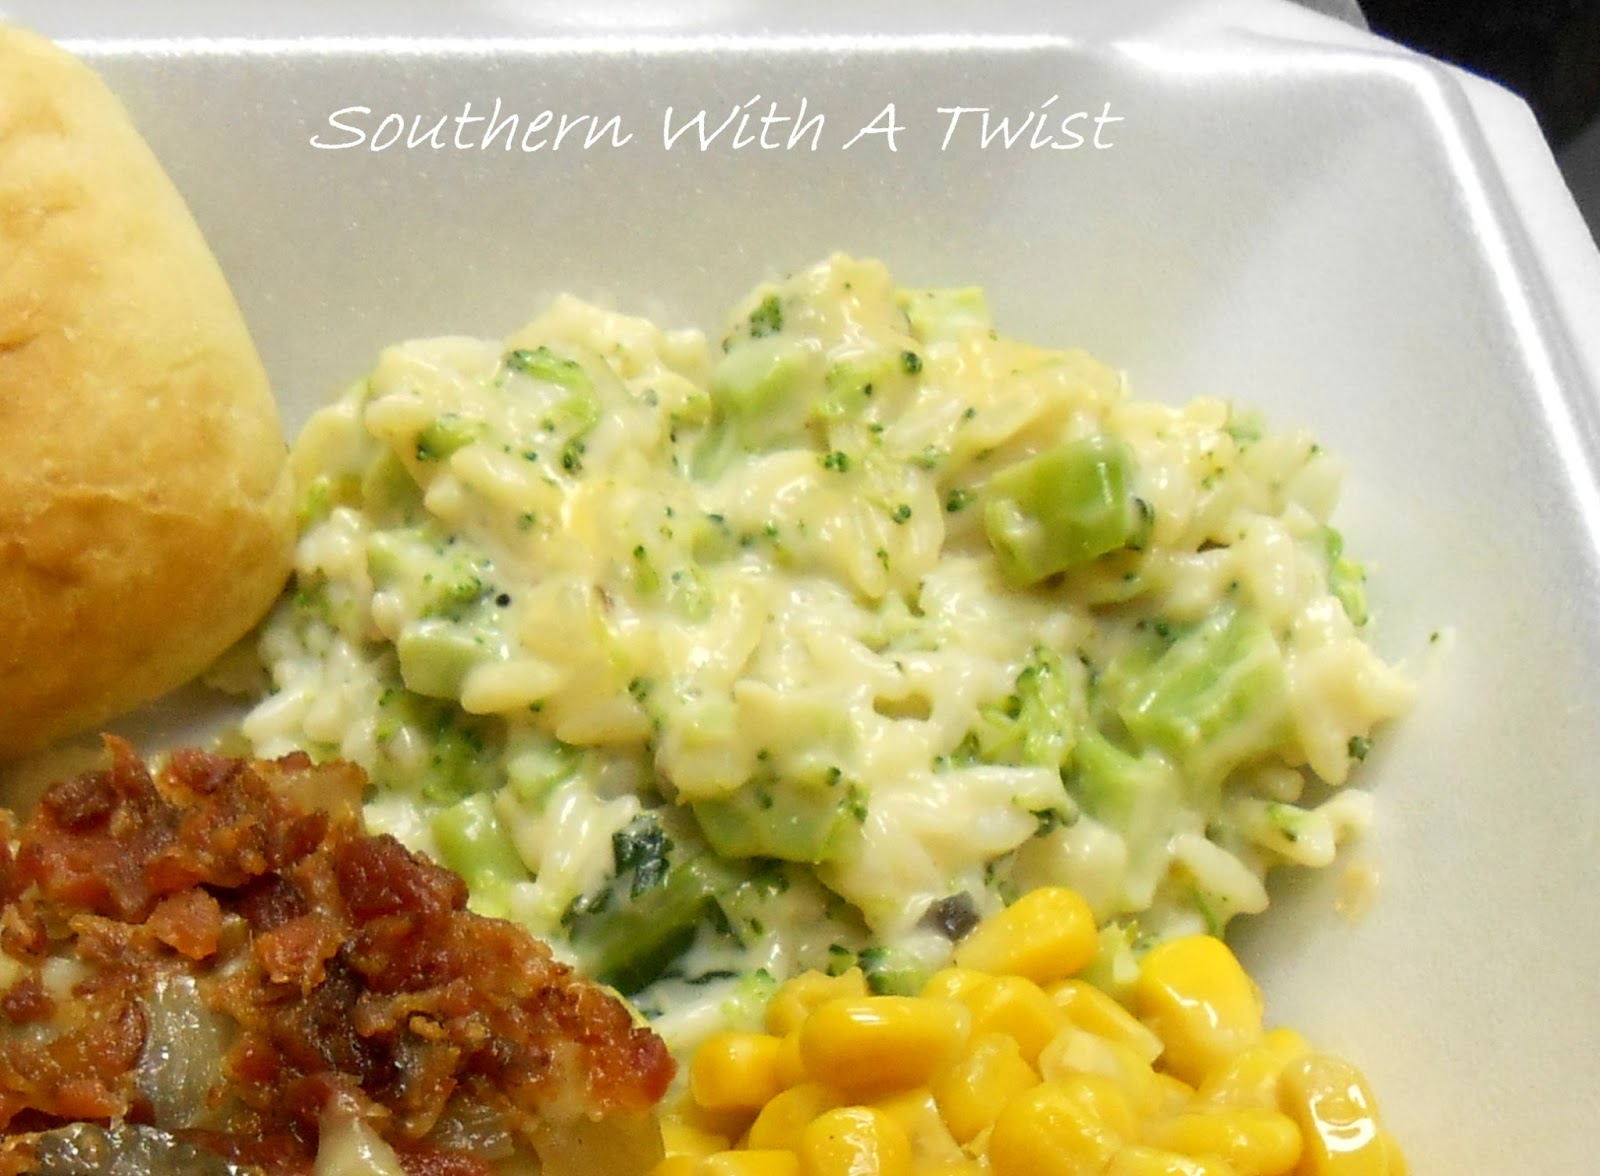 Chicken and broccoli casserole - photo#25